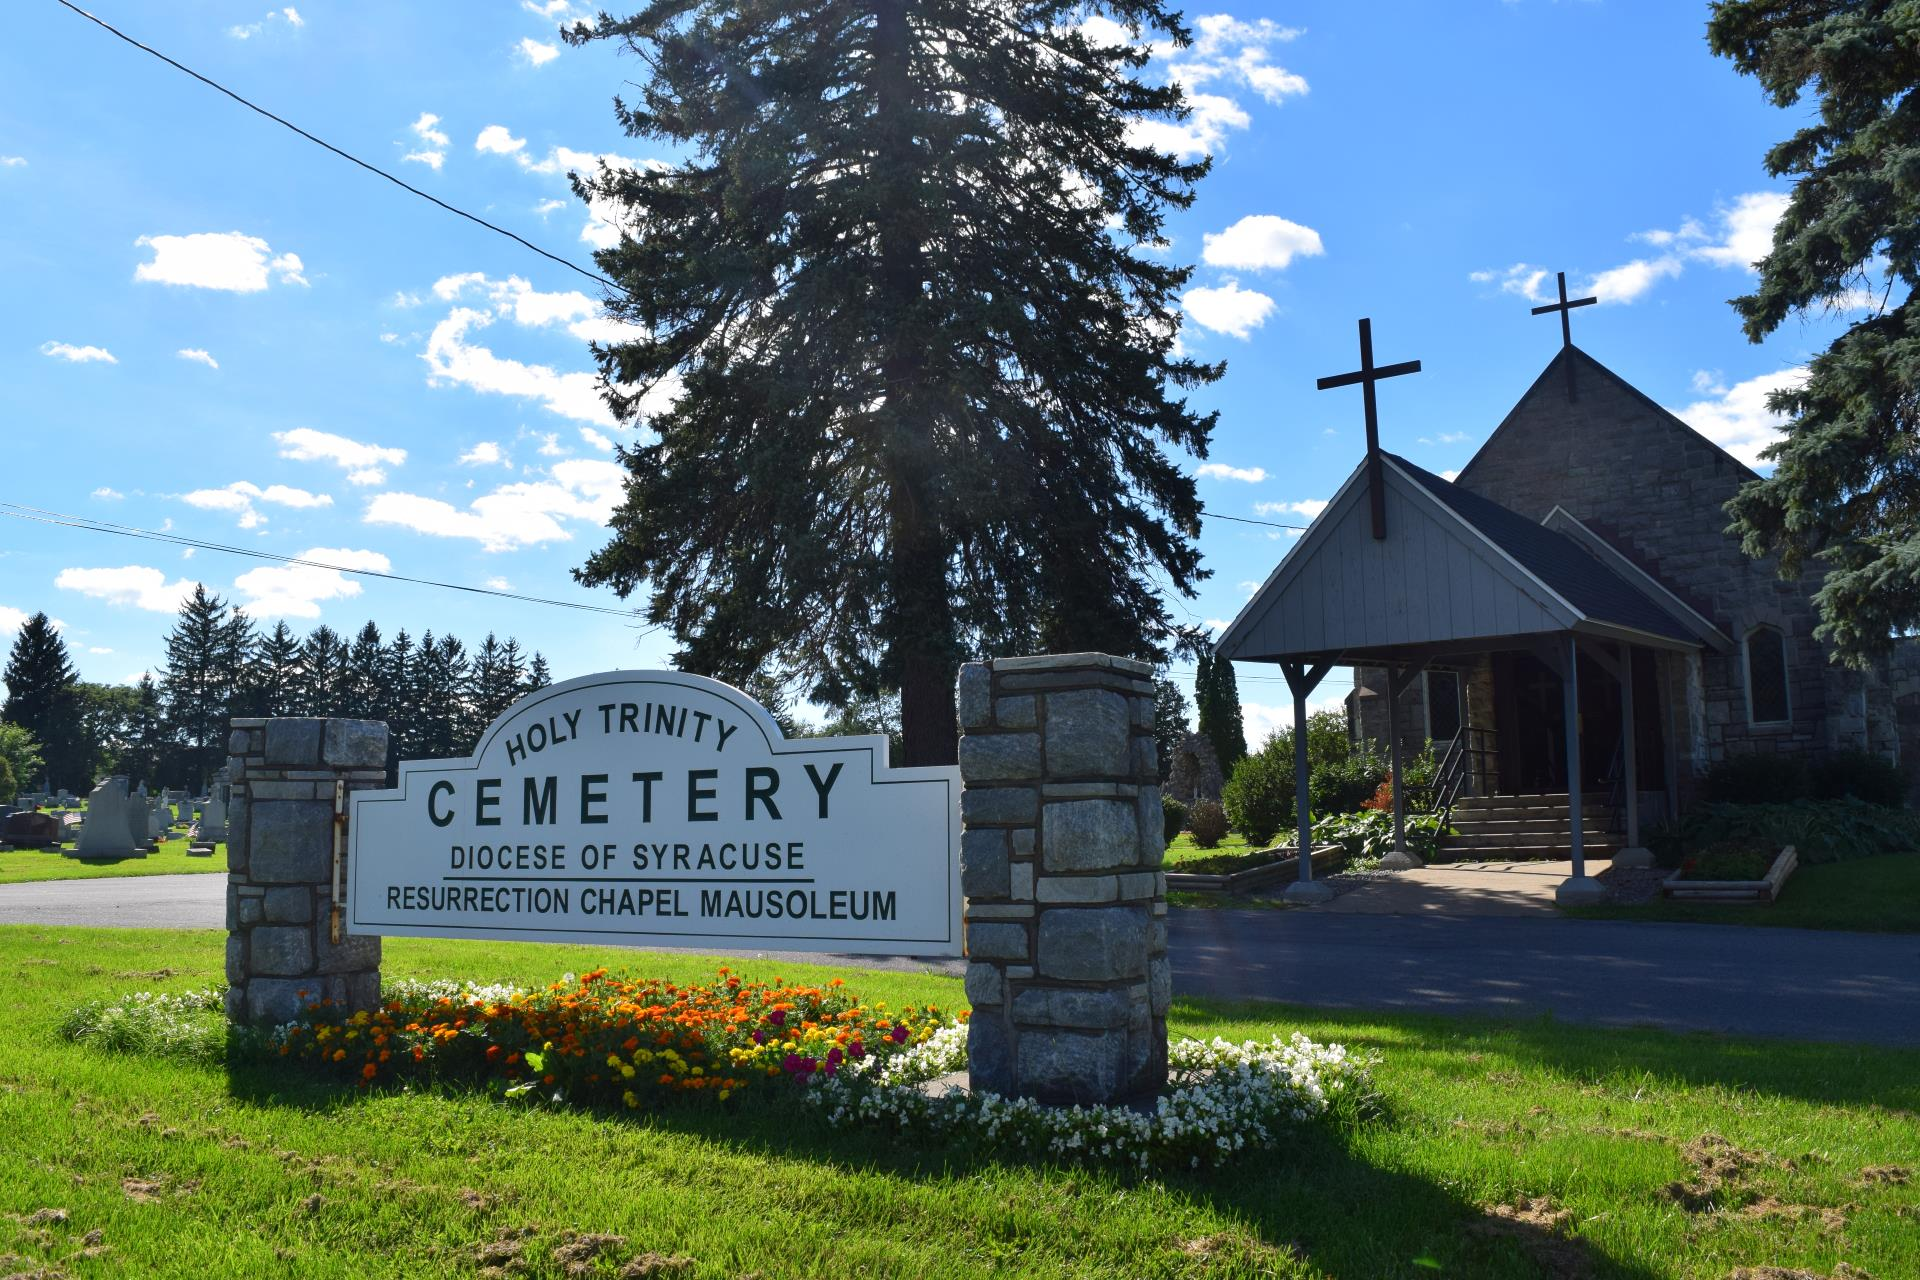 Entrance sign to Holy Trinity Cemetery